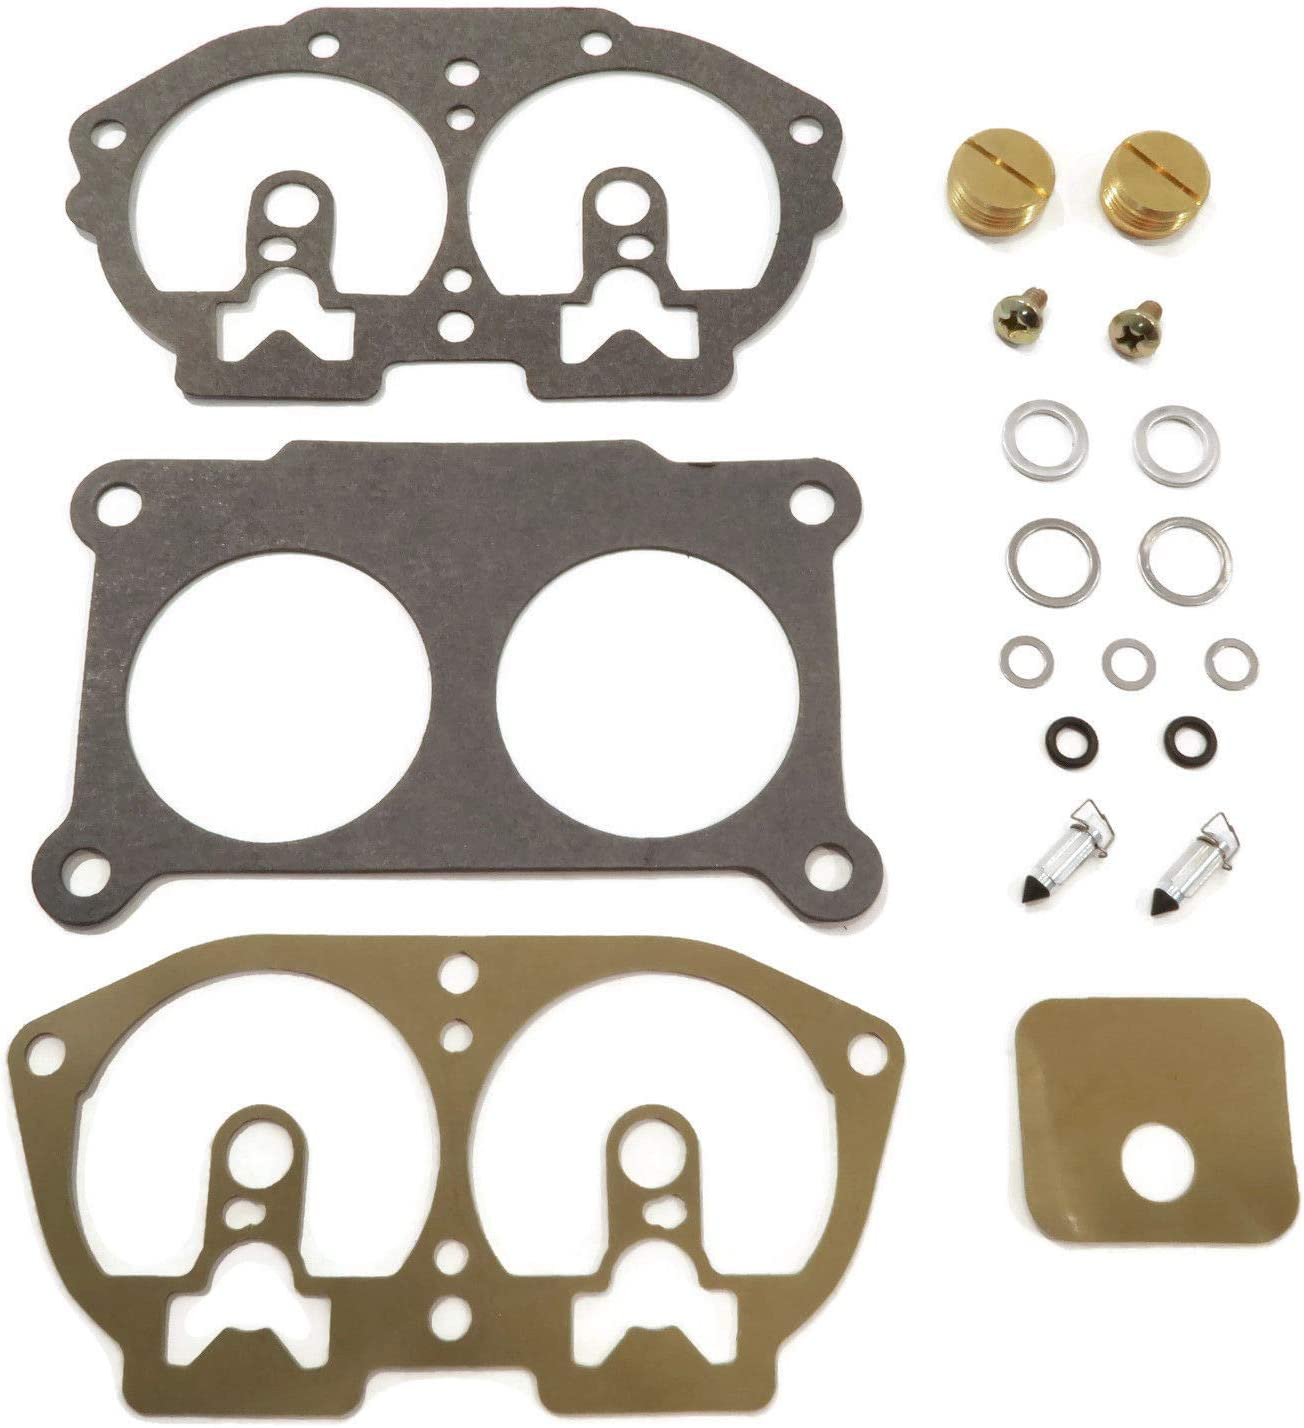 The ROP Shop | Carburetor Repair Kit for 1992 Yamaha 200HP, 200TJRQ, 200TLRQ, 200TXRQ Engine